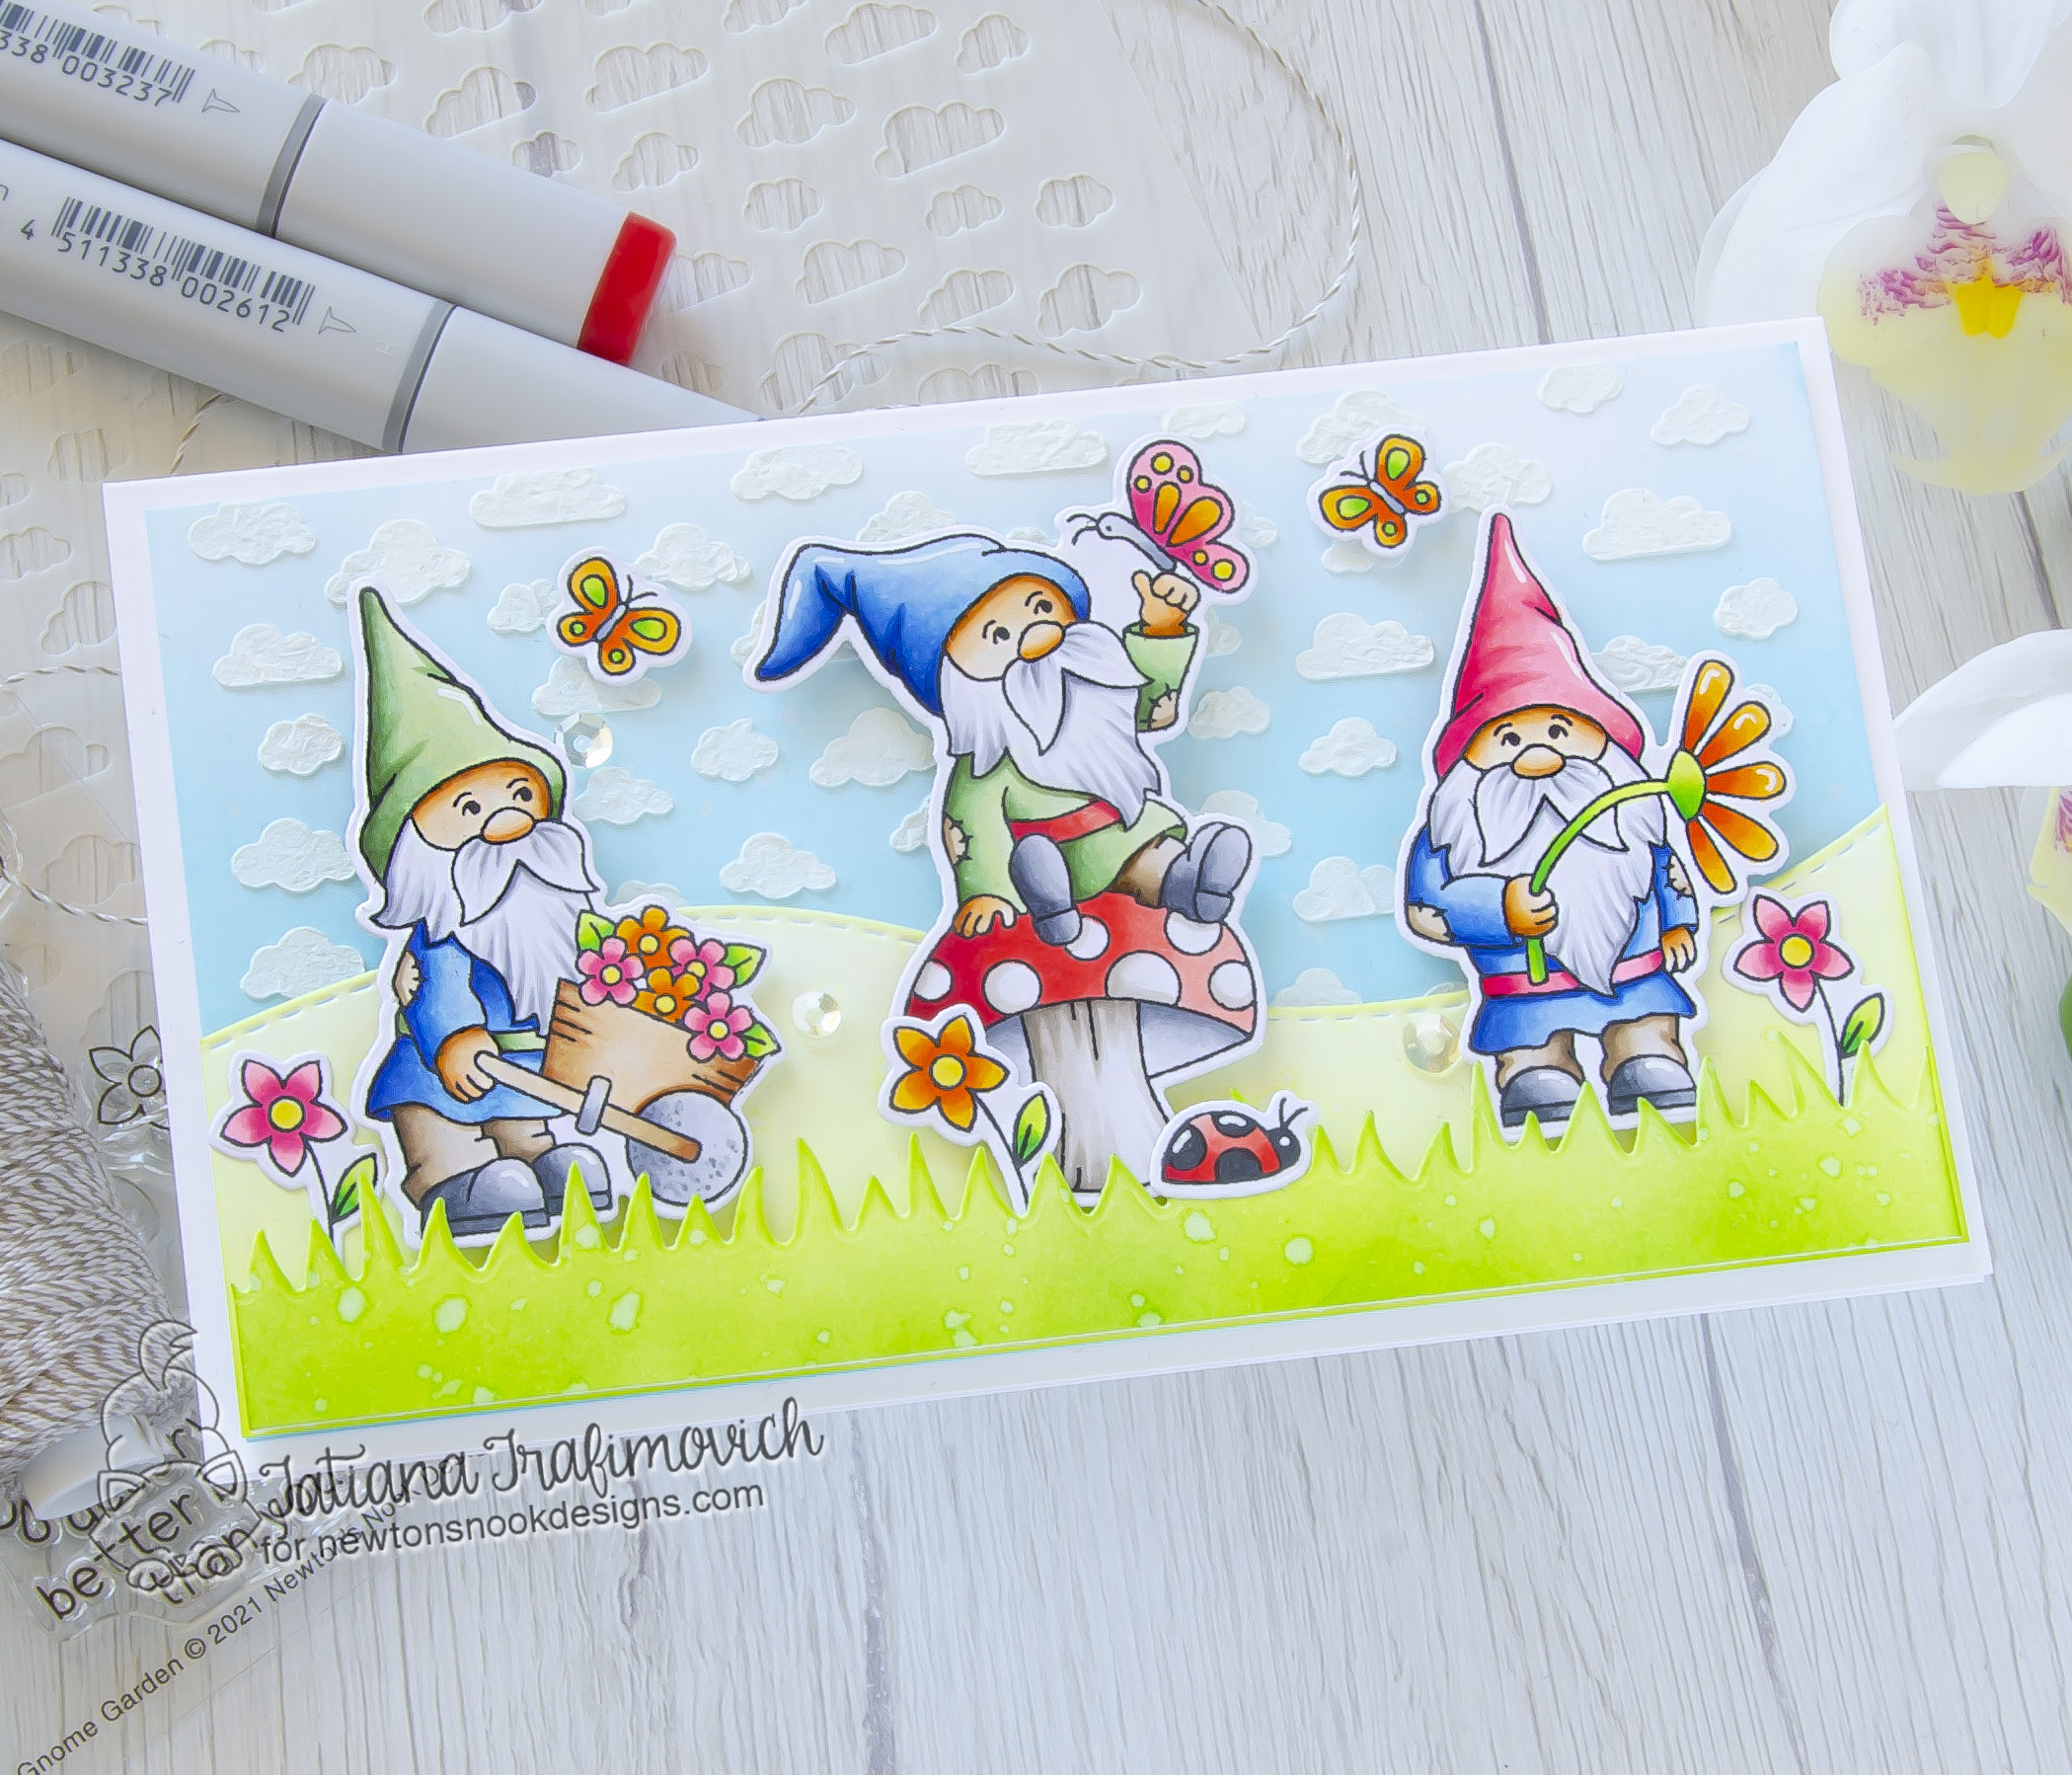 Gnome-One Deserves A Better Birthday Than You! #handmade card by Tatiana Trafimovich #tatianacraftandart - Gnome Garden stamp set by Newton's Nook Designs #newtonsnook